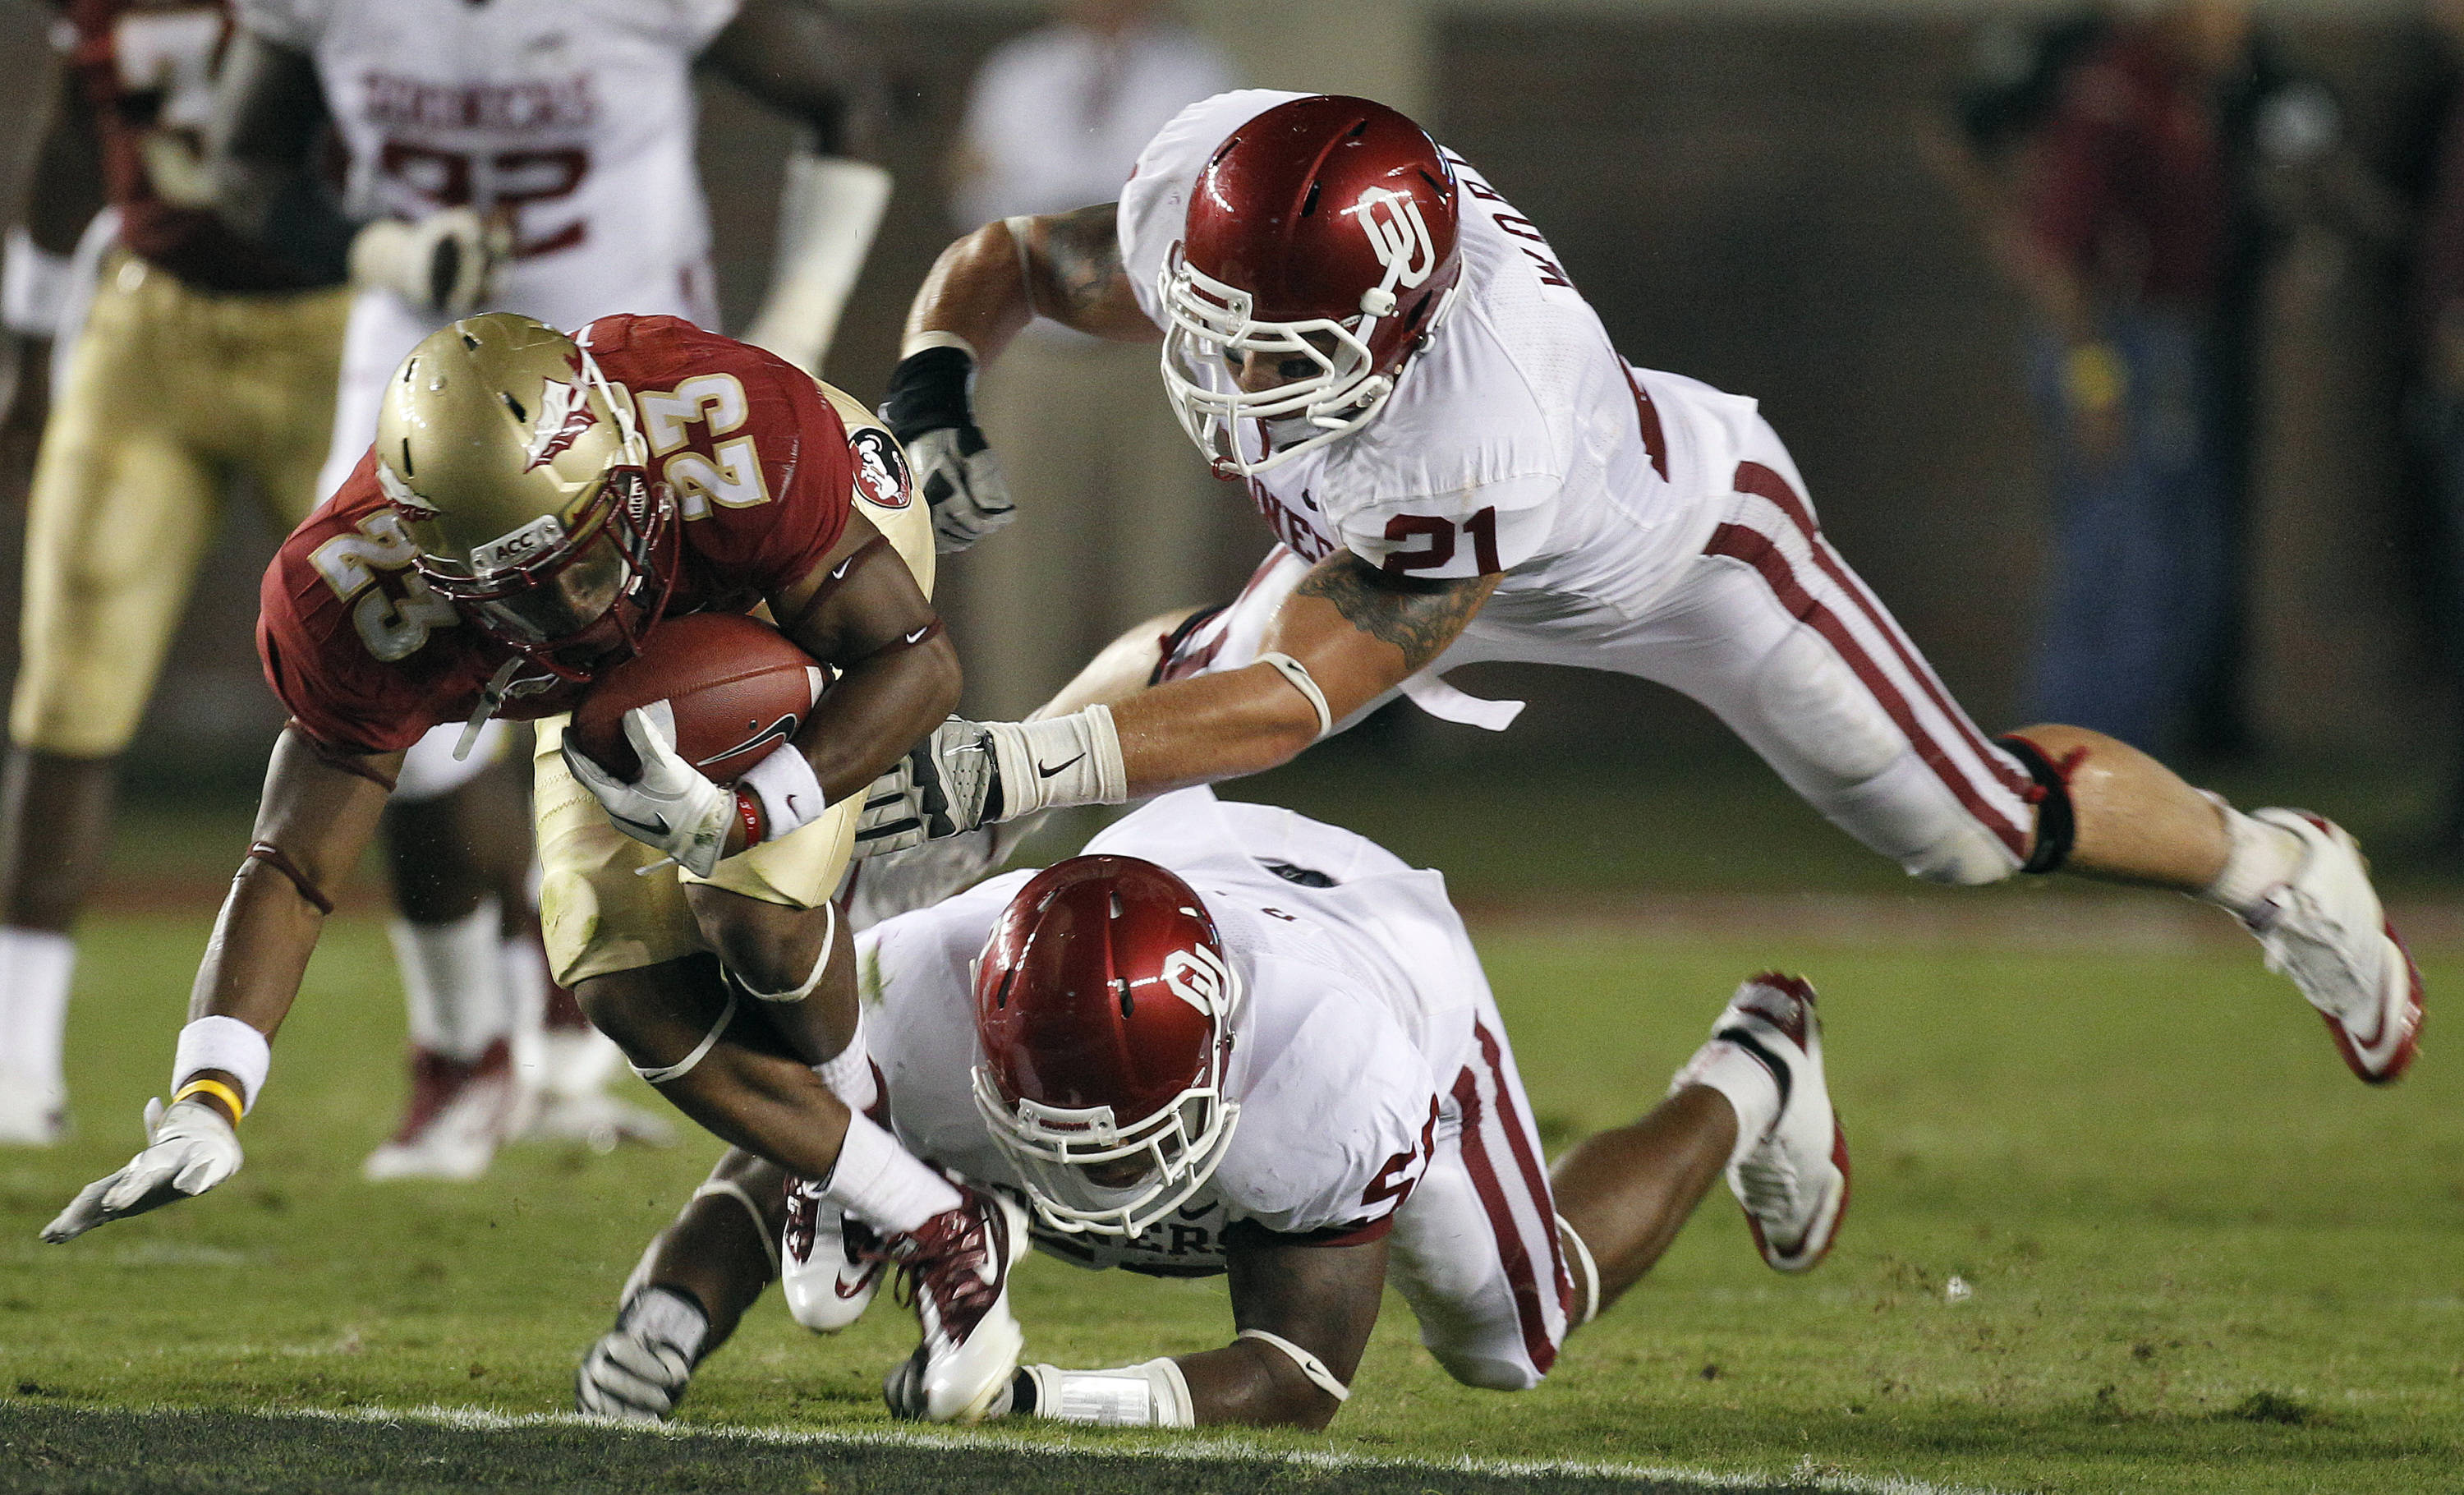 Florida State running back Chris Thompson (23) eludes a tackle by Oklahoma linebacker Tom Wort (21) and defensive end Ronnell Lewis (56). (AP Photo/Chris O'Meara)